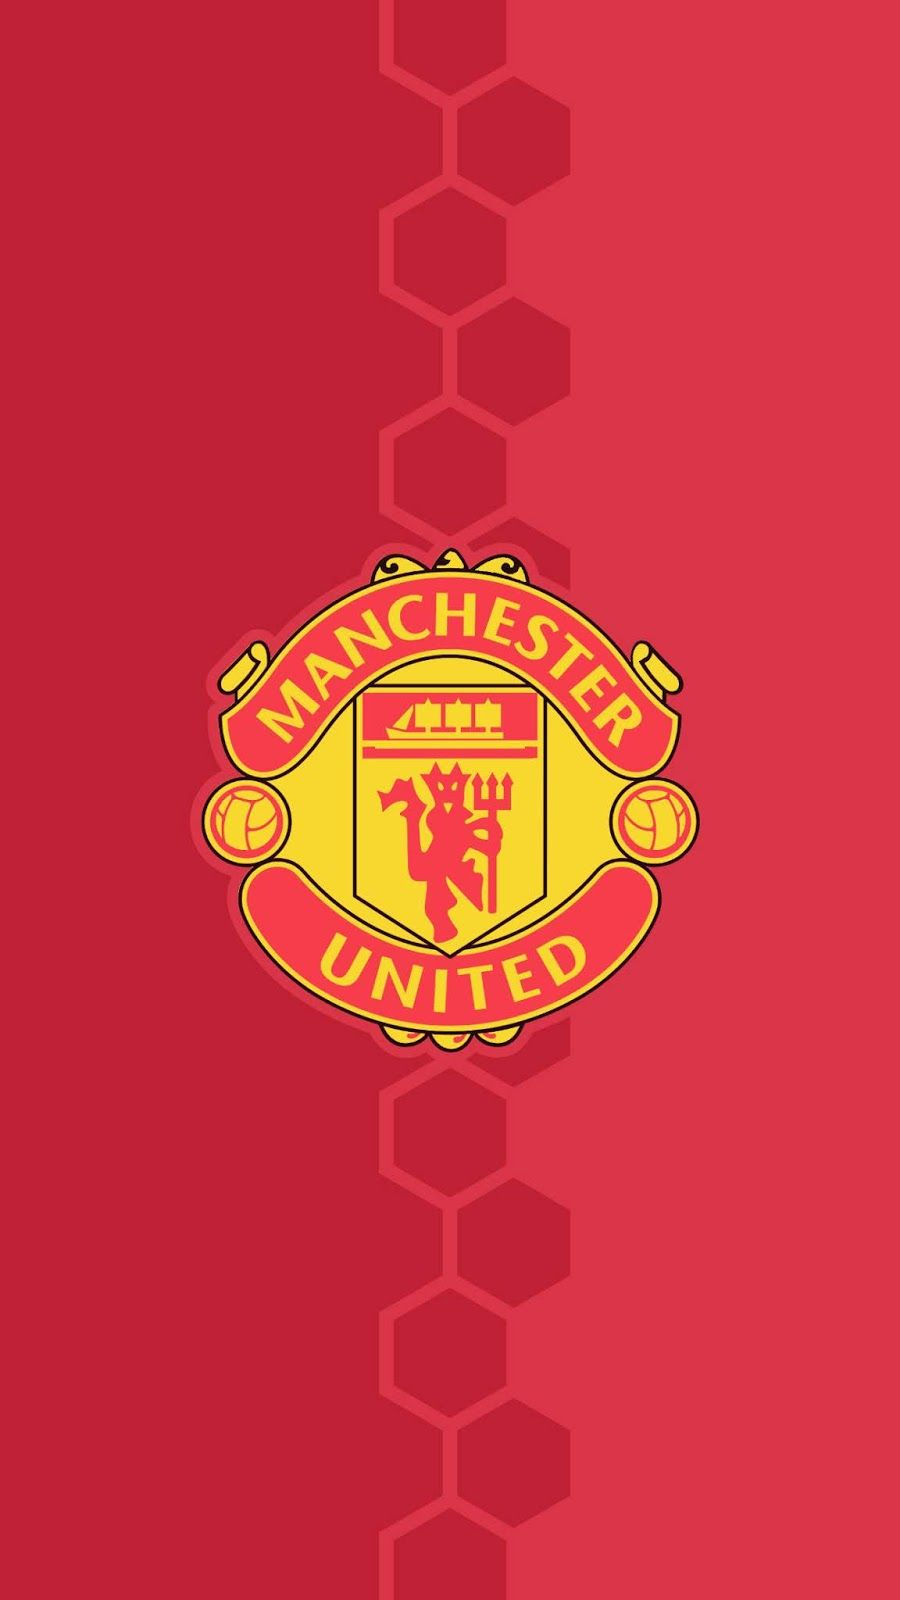 Most Nice Manchester United Wallpapers IPhone manchester united iphone wallpaper hd